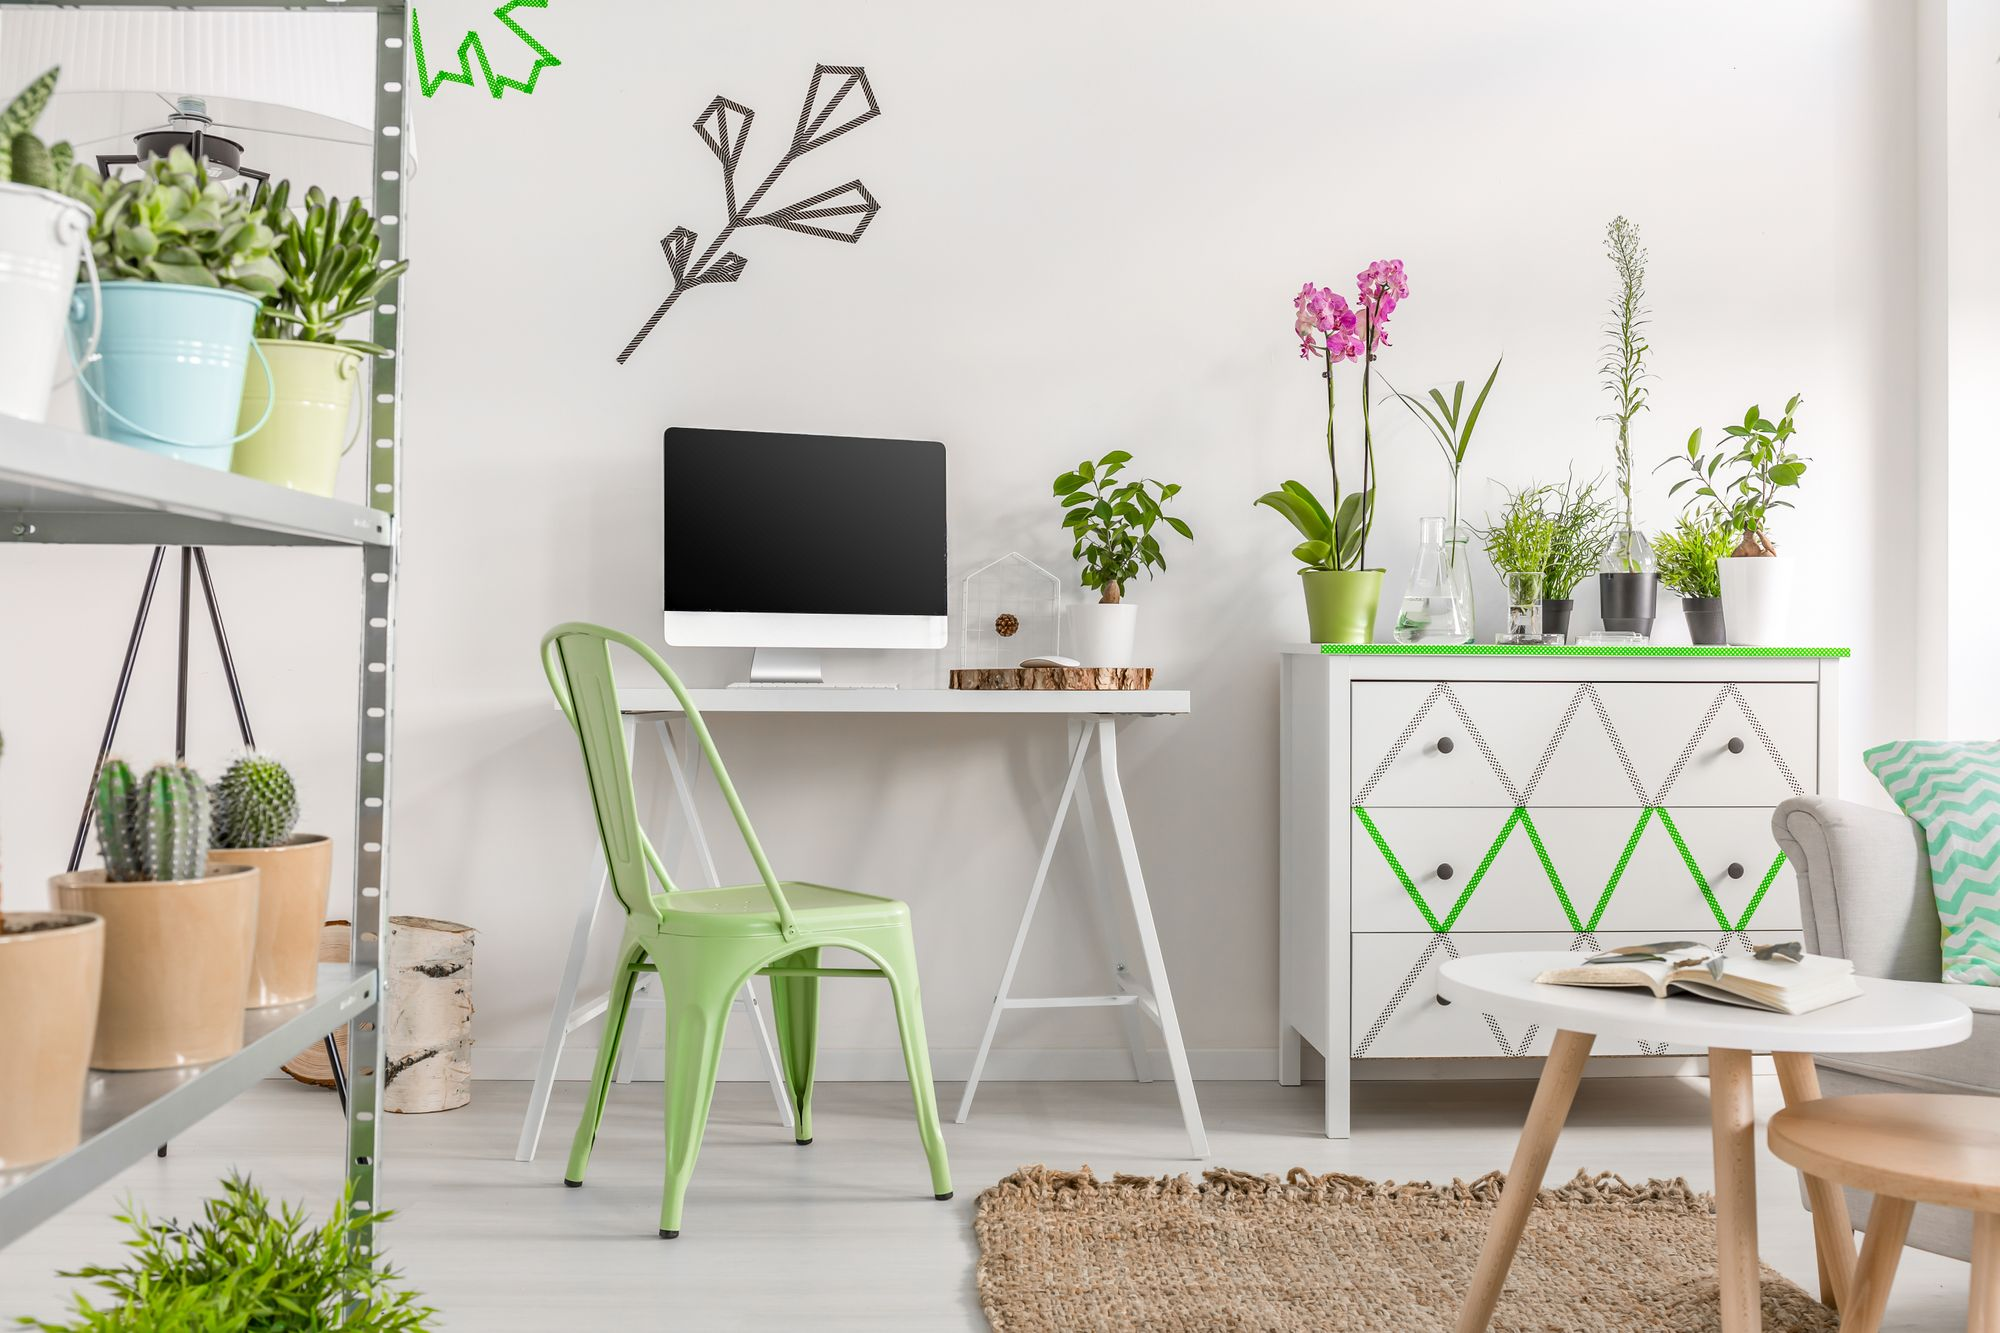 How Would You Set Up An Eco-Friendly Home Office?